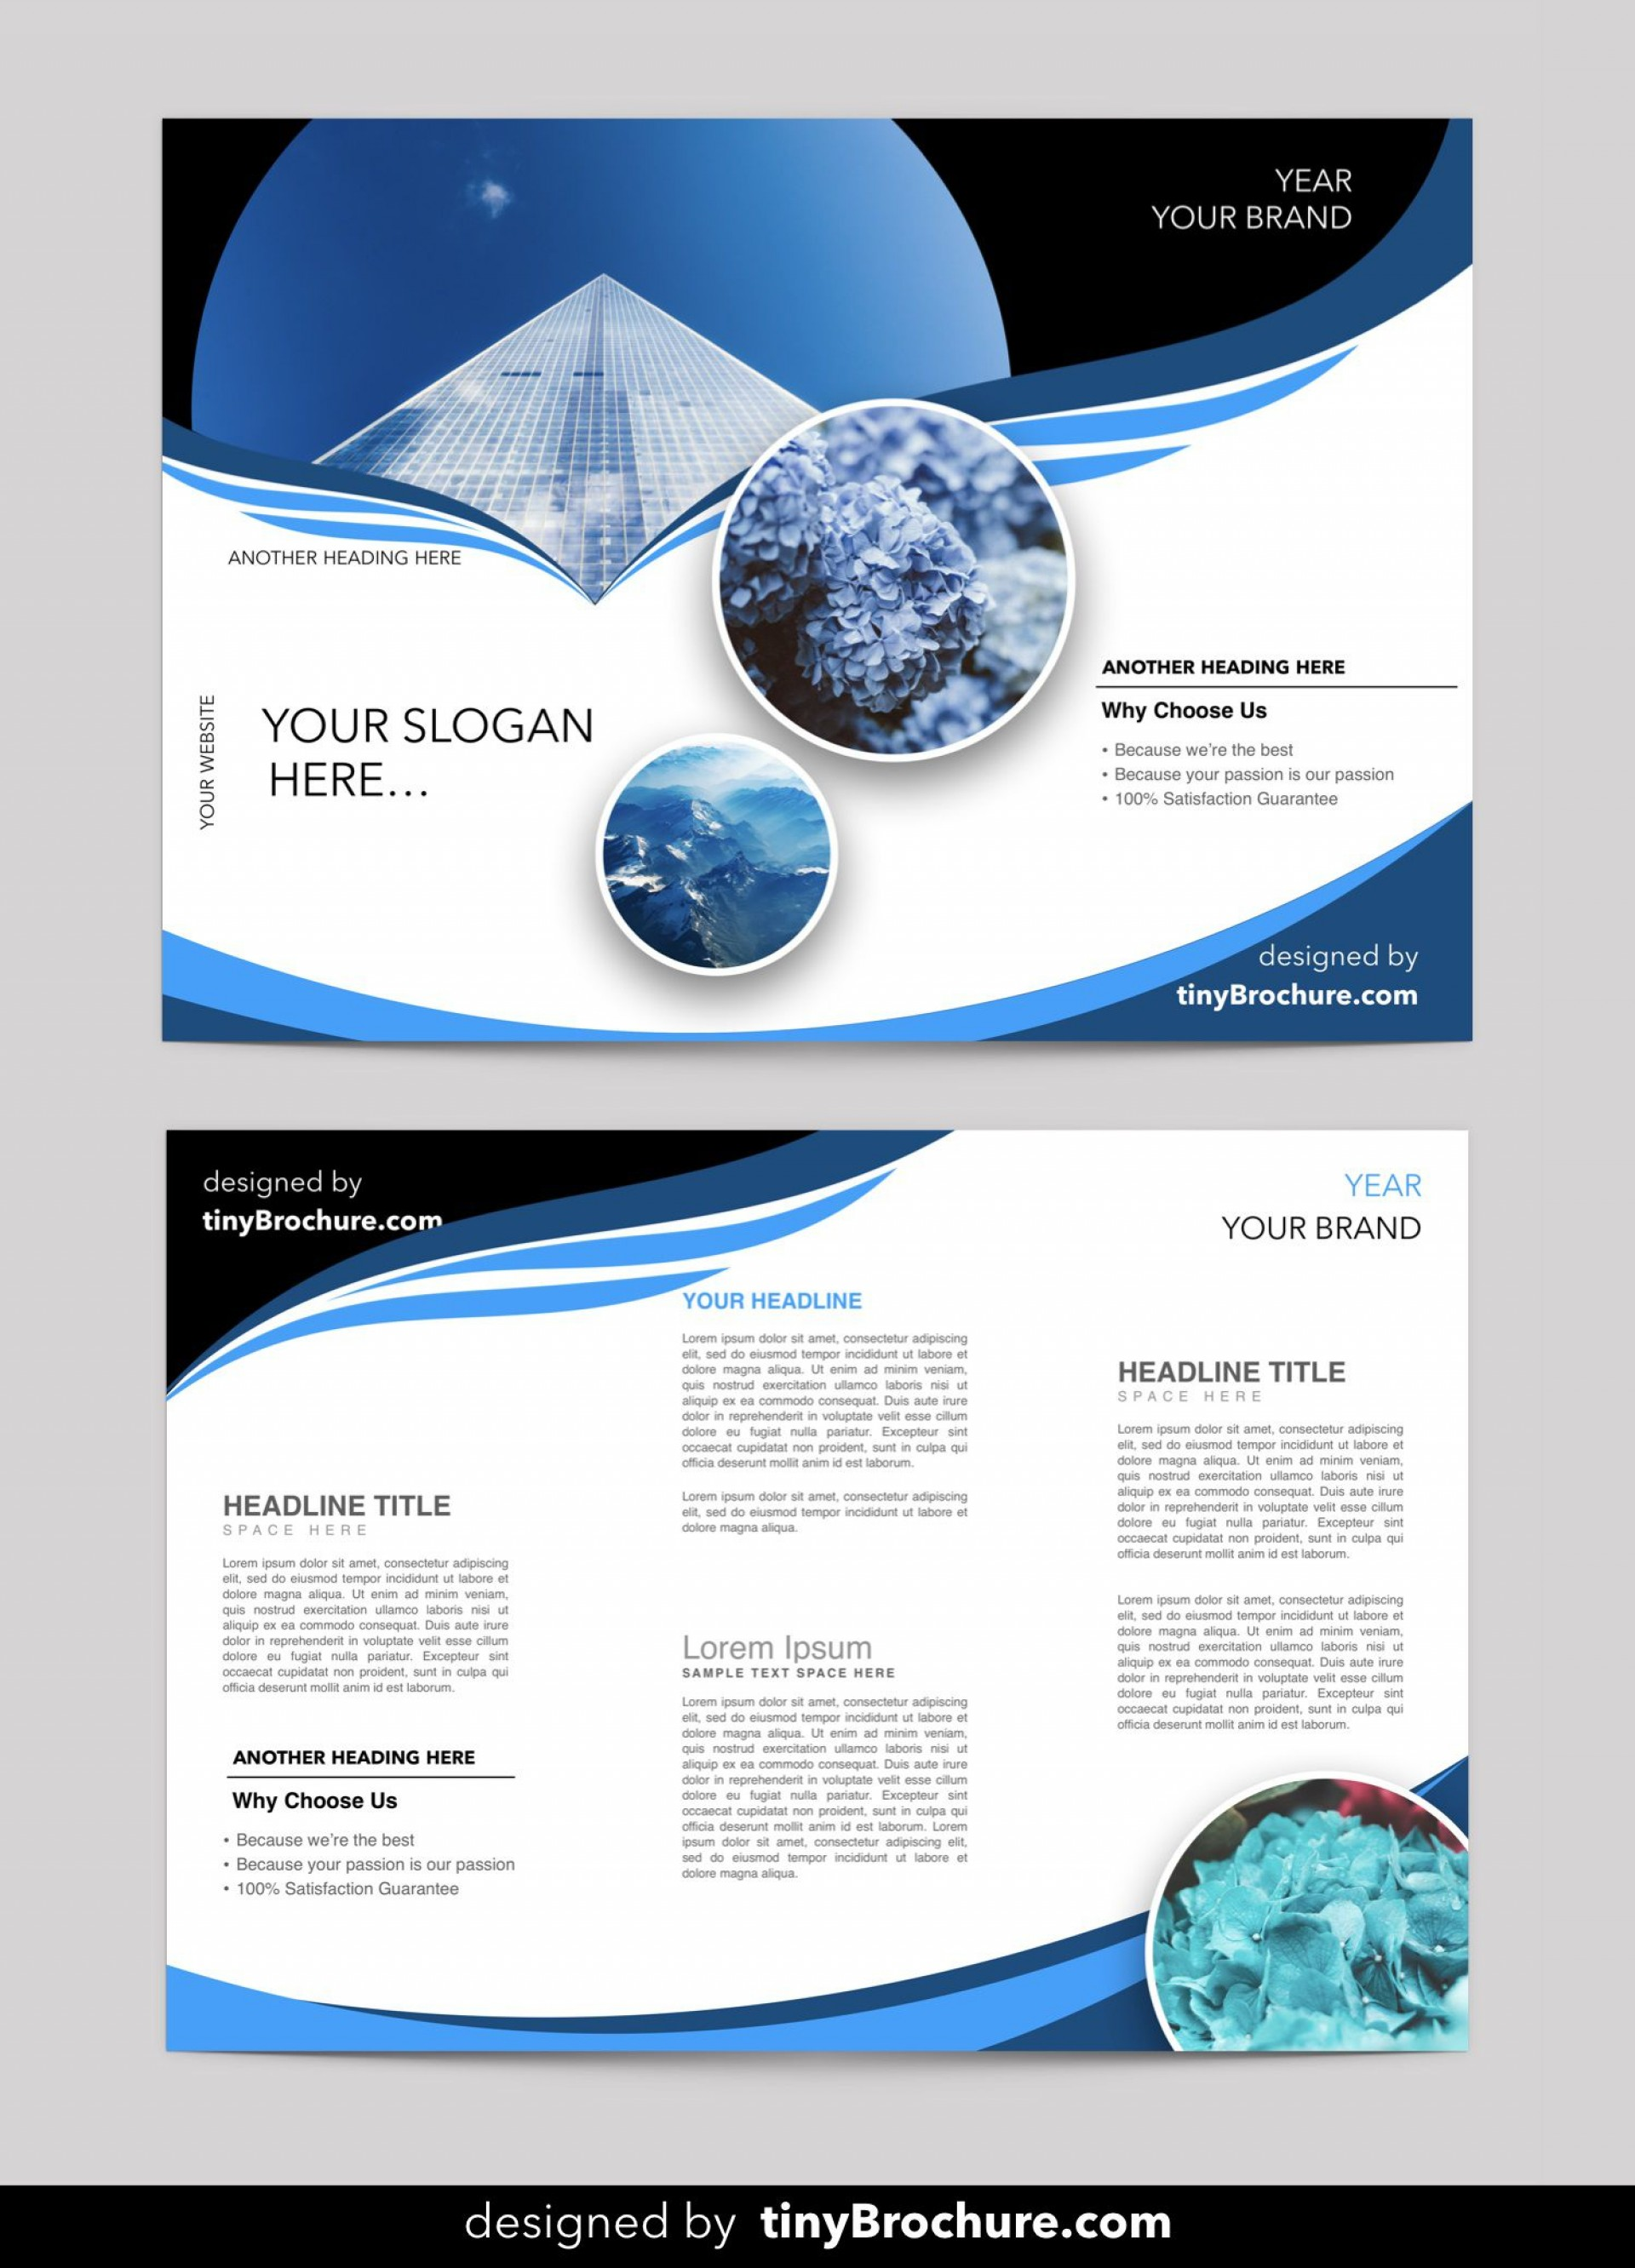 002 Unforgettable Free Word Flyer Template High Resolution  Templates M Download Event1920